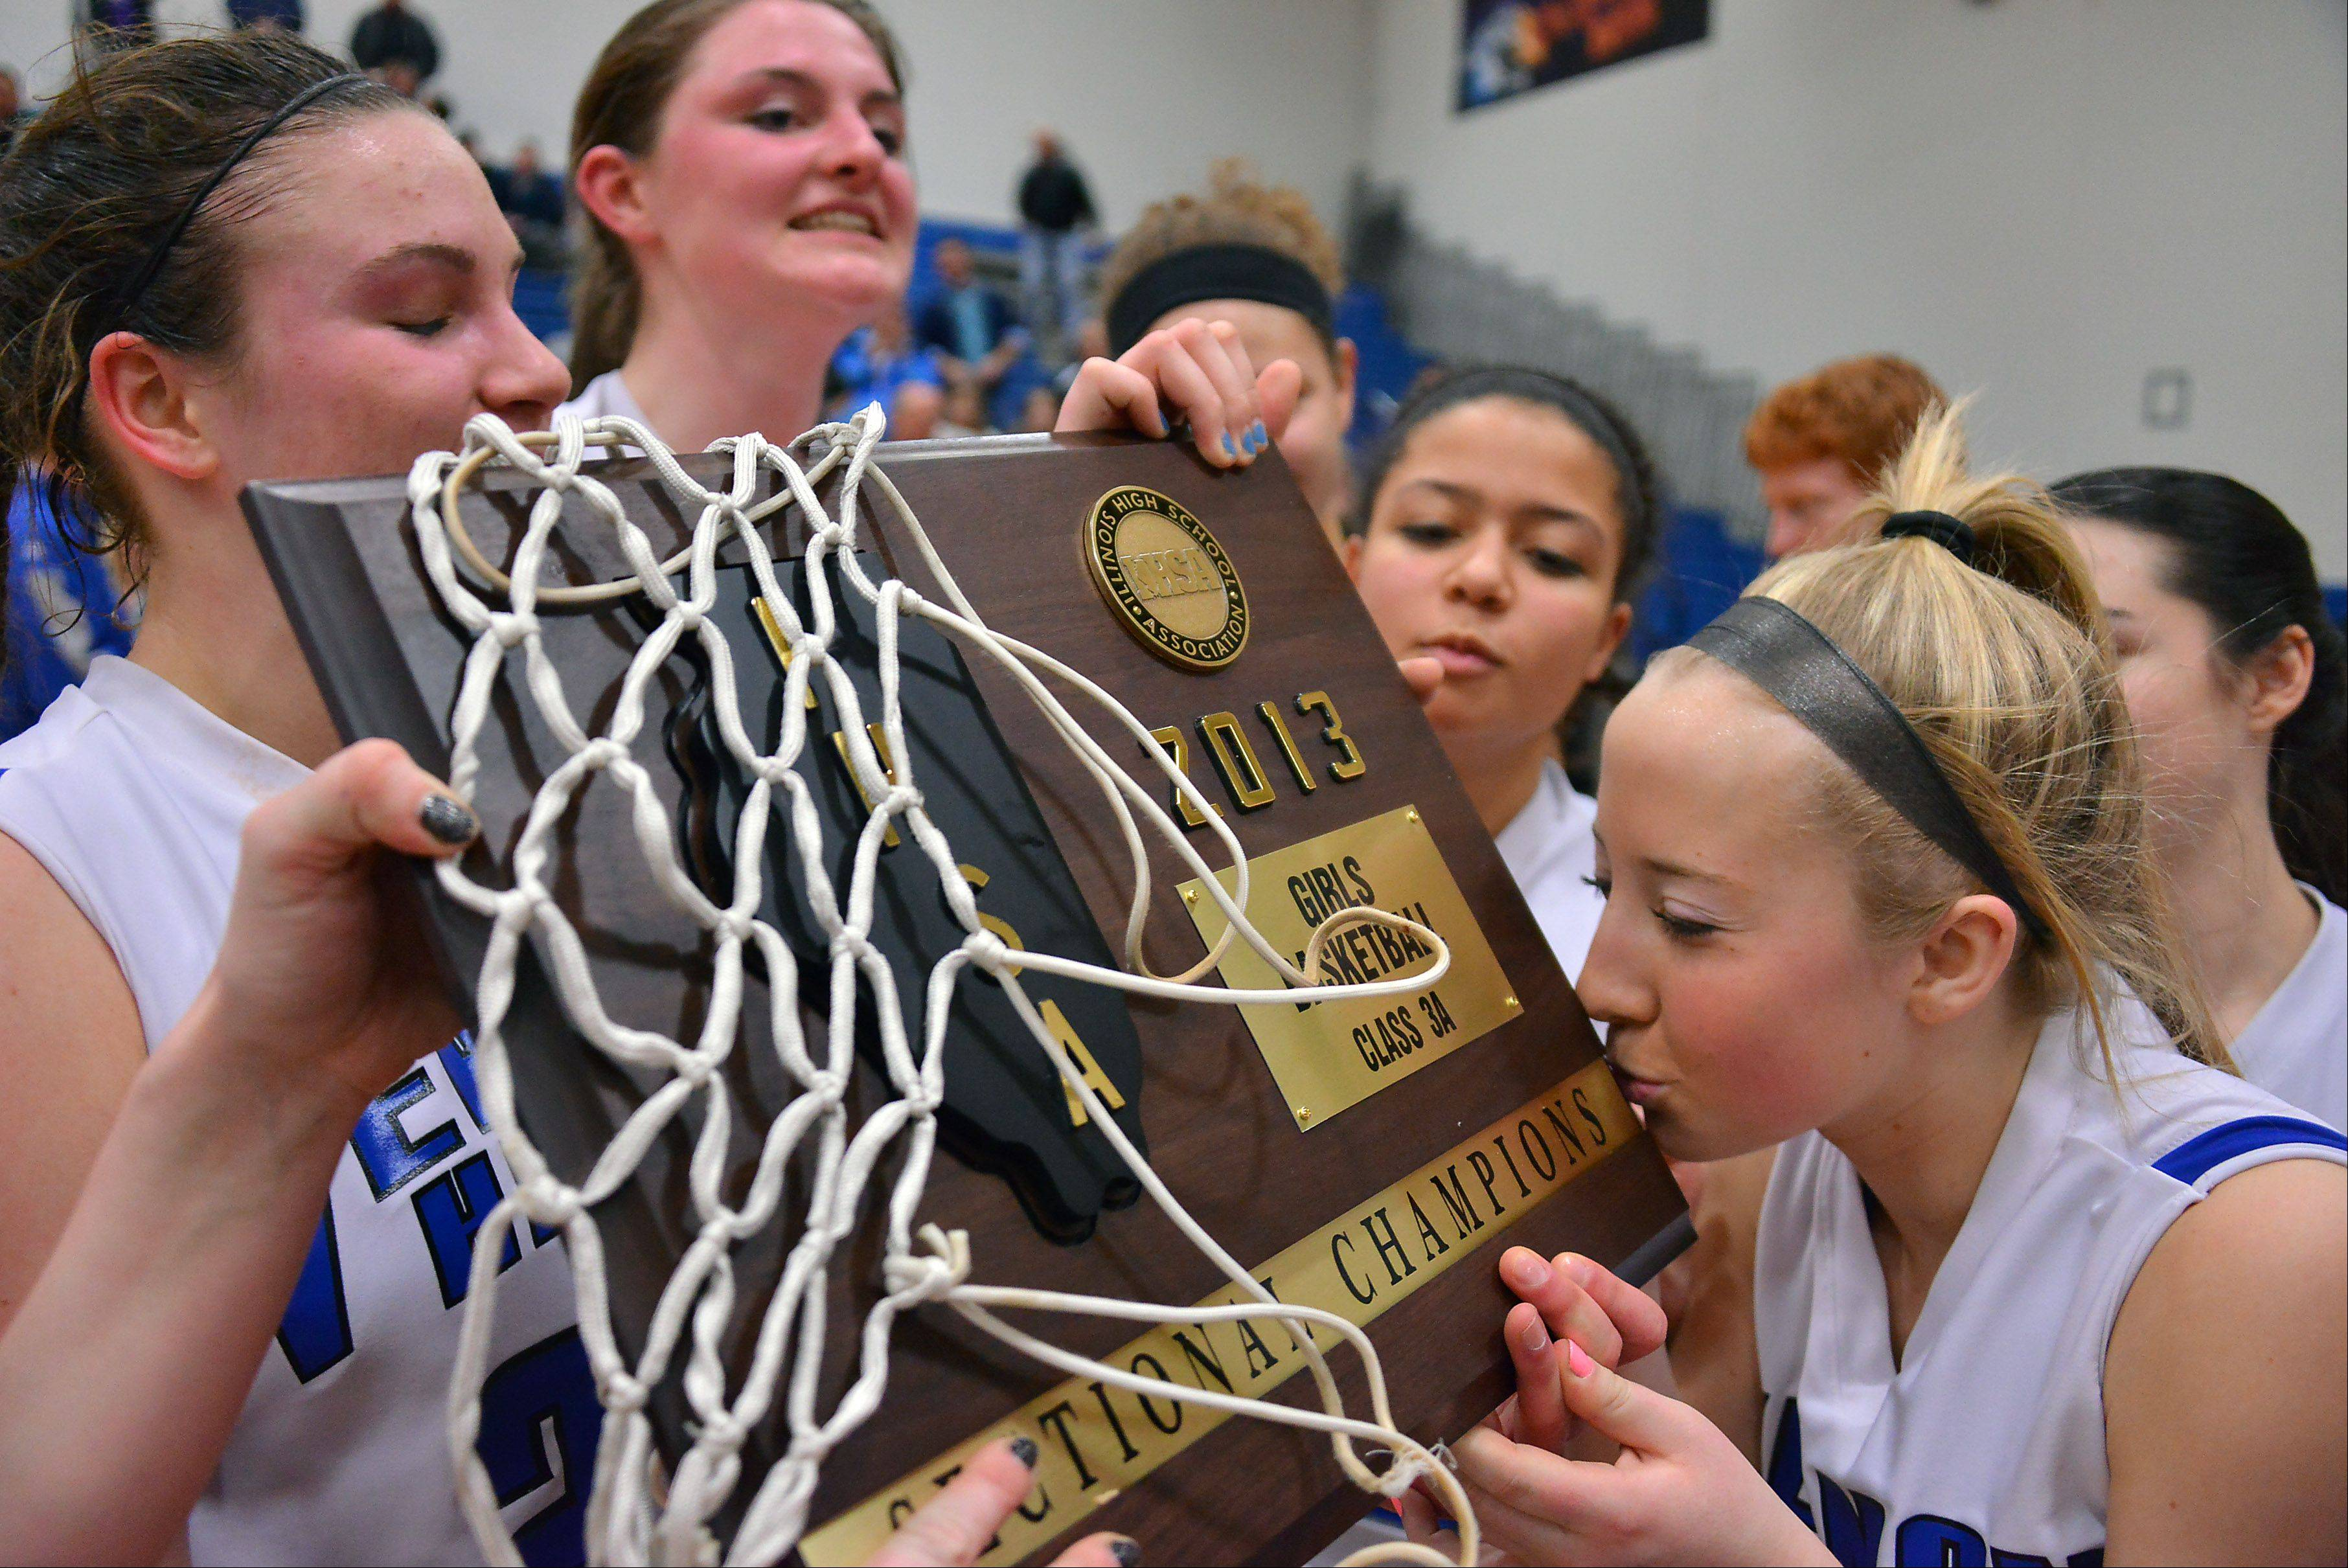 Guard Haley Lieberman and her Vernon Hills teammates figure to be kissing postseason hardware again this winter.